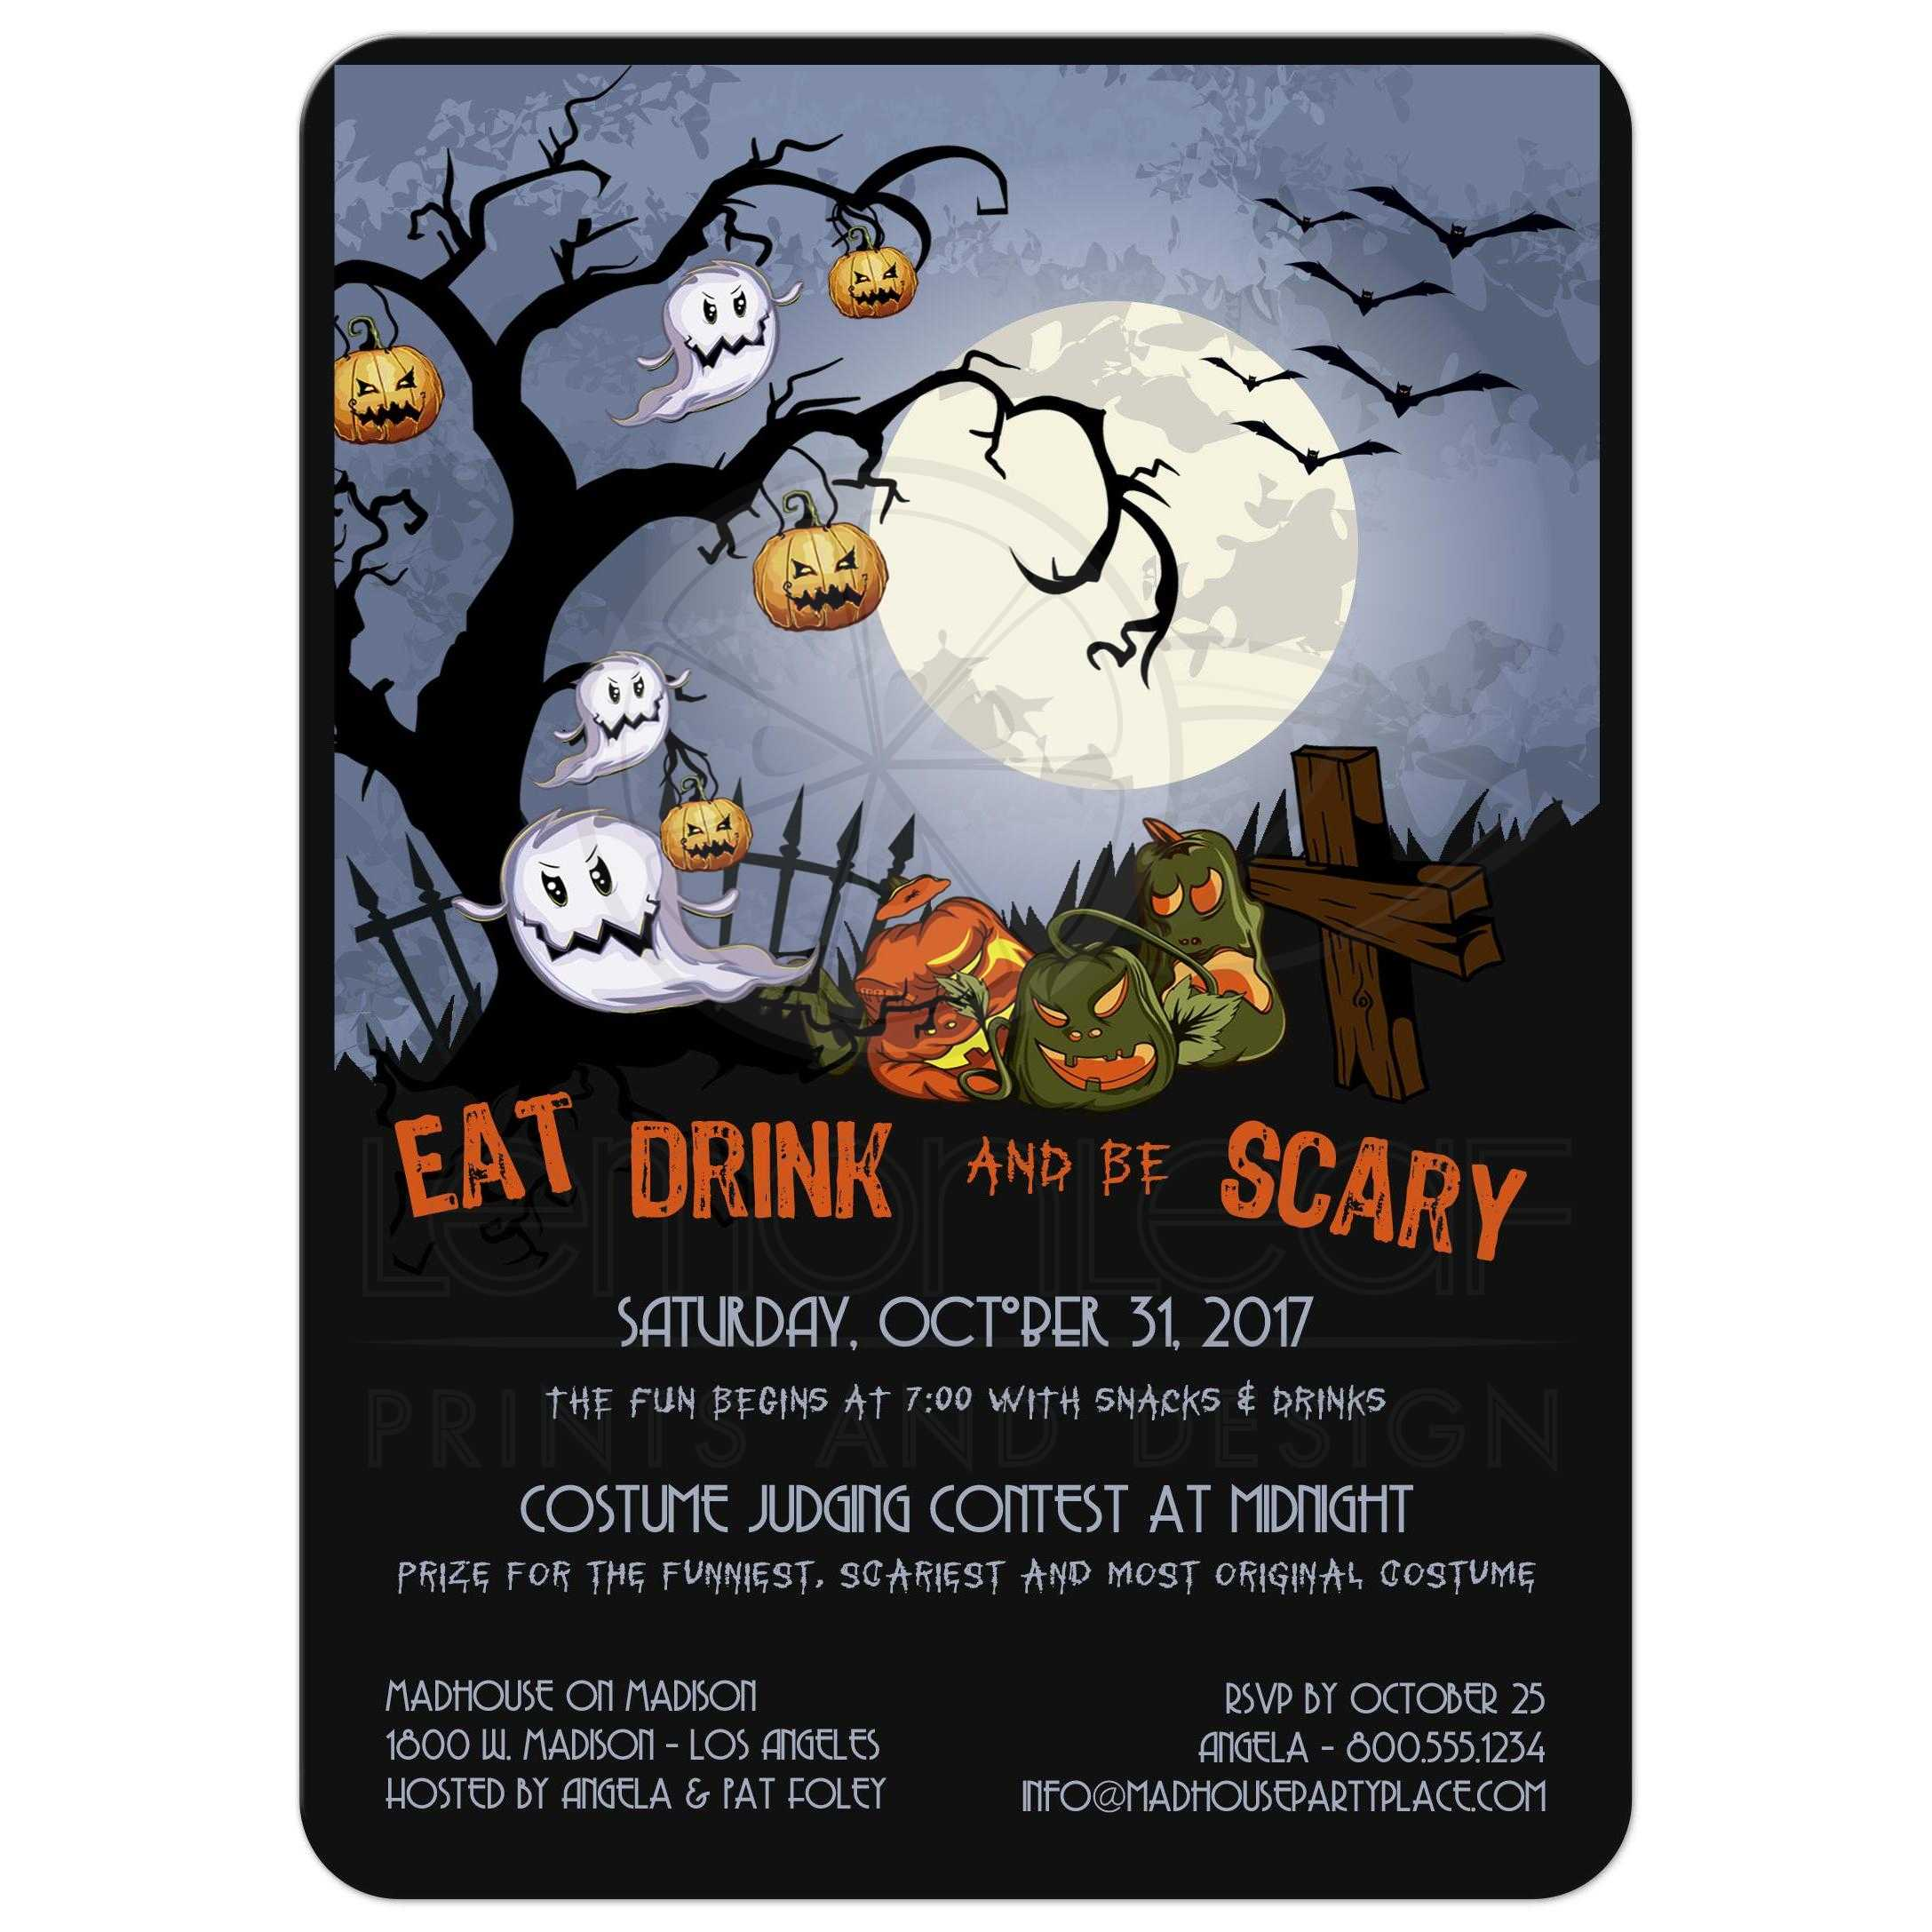 kitchen favor ideas html with Eat Drink And Be Scary A Spooky Graveyard Halloween Party Invitation on Wedding Vow Art in addition Any Anniversary Invitation Card Optional Photos Purple And Gold Damask Scrolls as well Tea Time Party additionally Stock Illustration Happy Family Cartoon in addition Colorful Trolls Birthday Party.